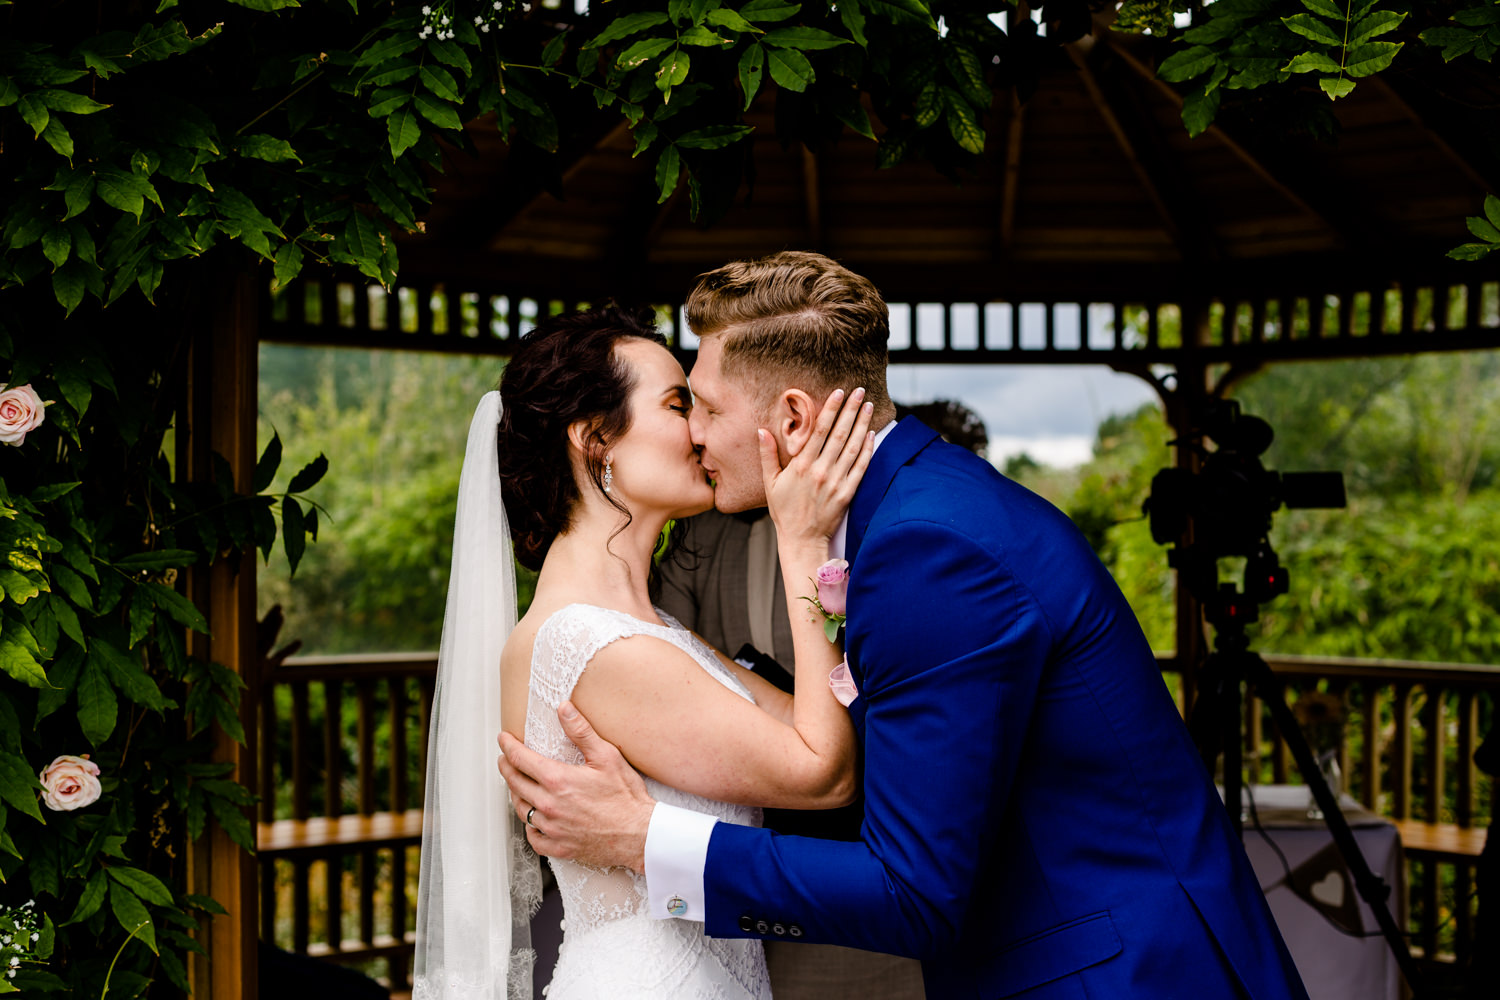 A bride & grooms first kiss at their Pryor Hayes wedding in Cheshire.